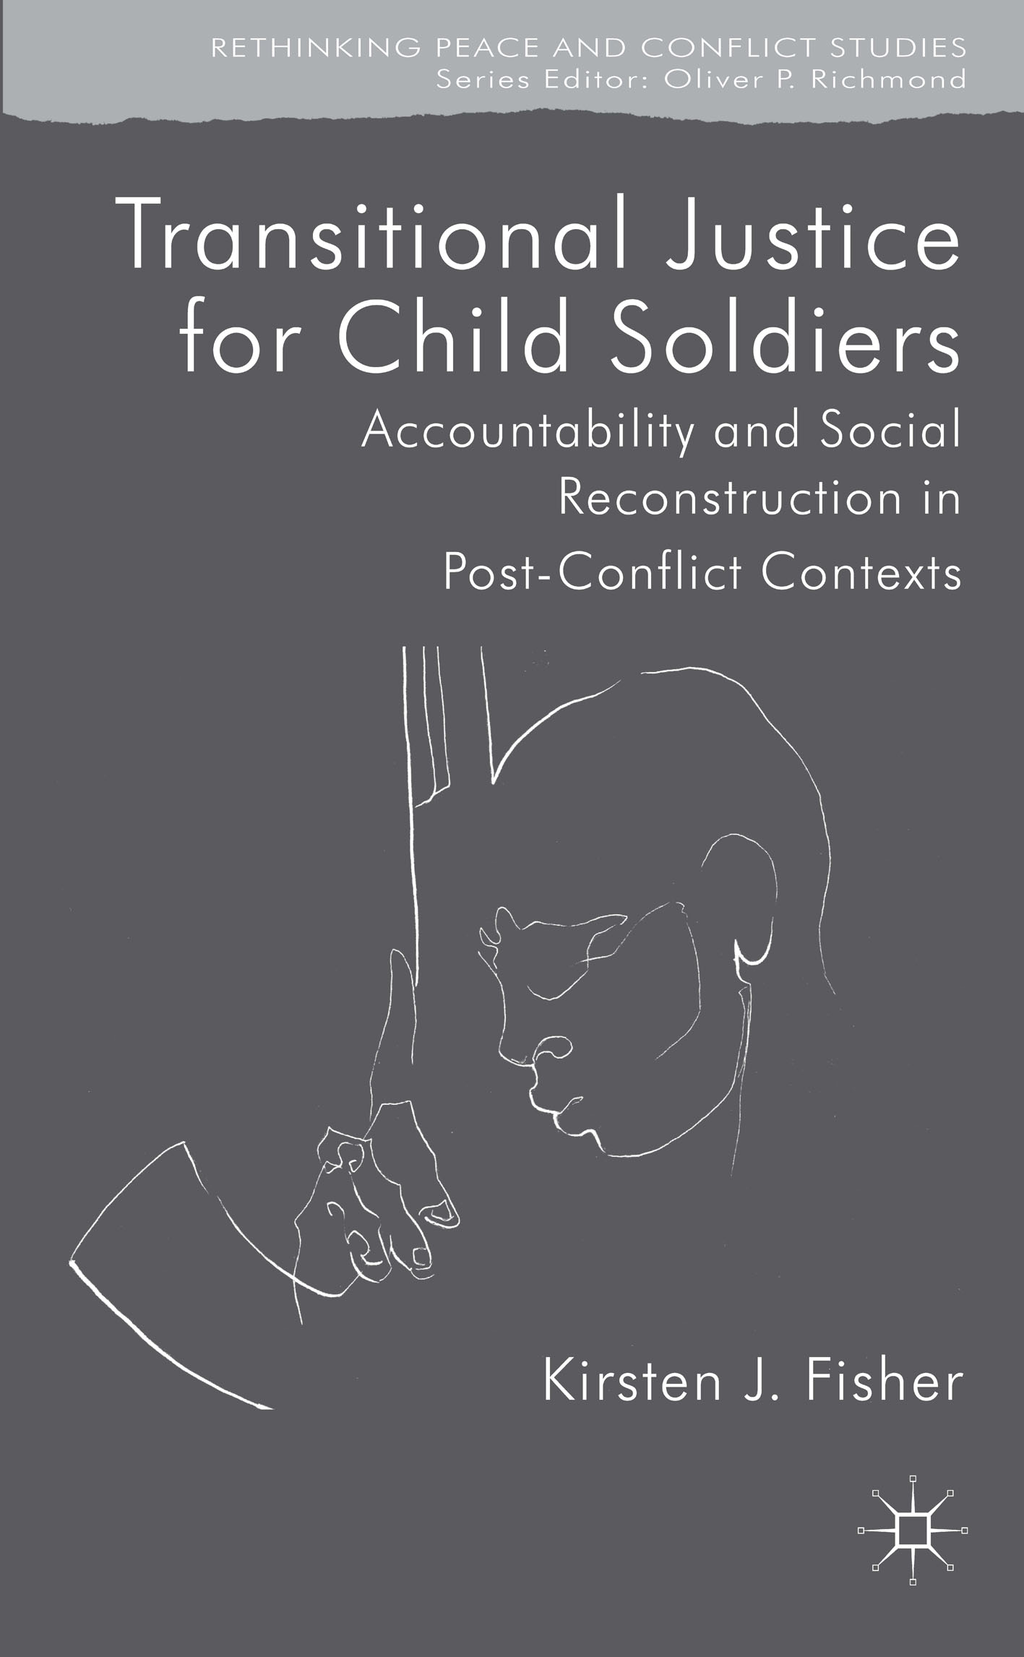 Transitional Justice for Child Soldiers Accountability and Social Reconstruction in Post-Conflict Contexts